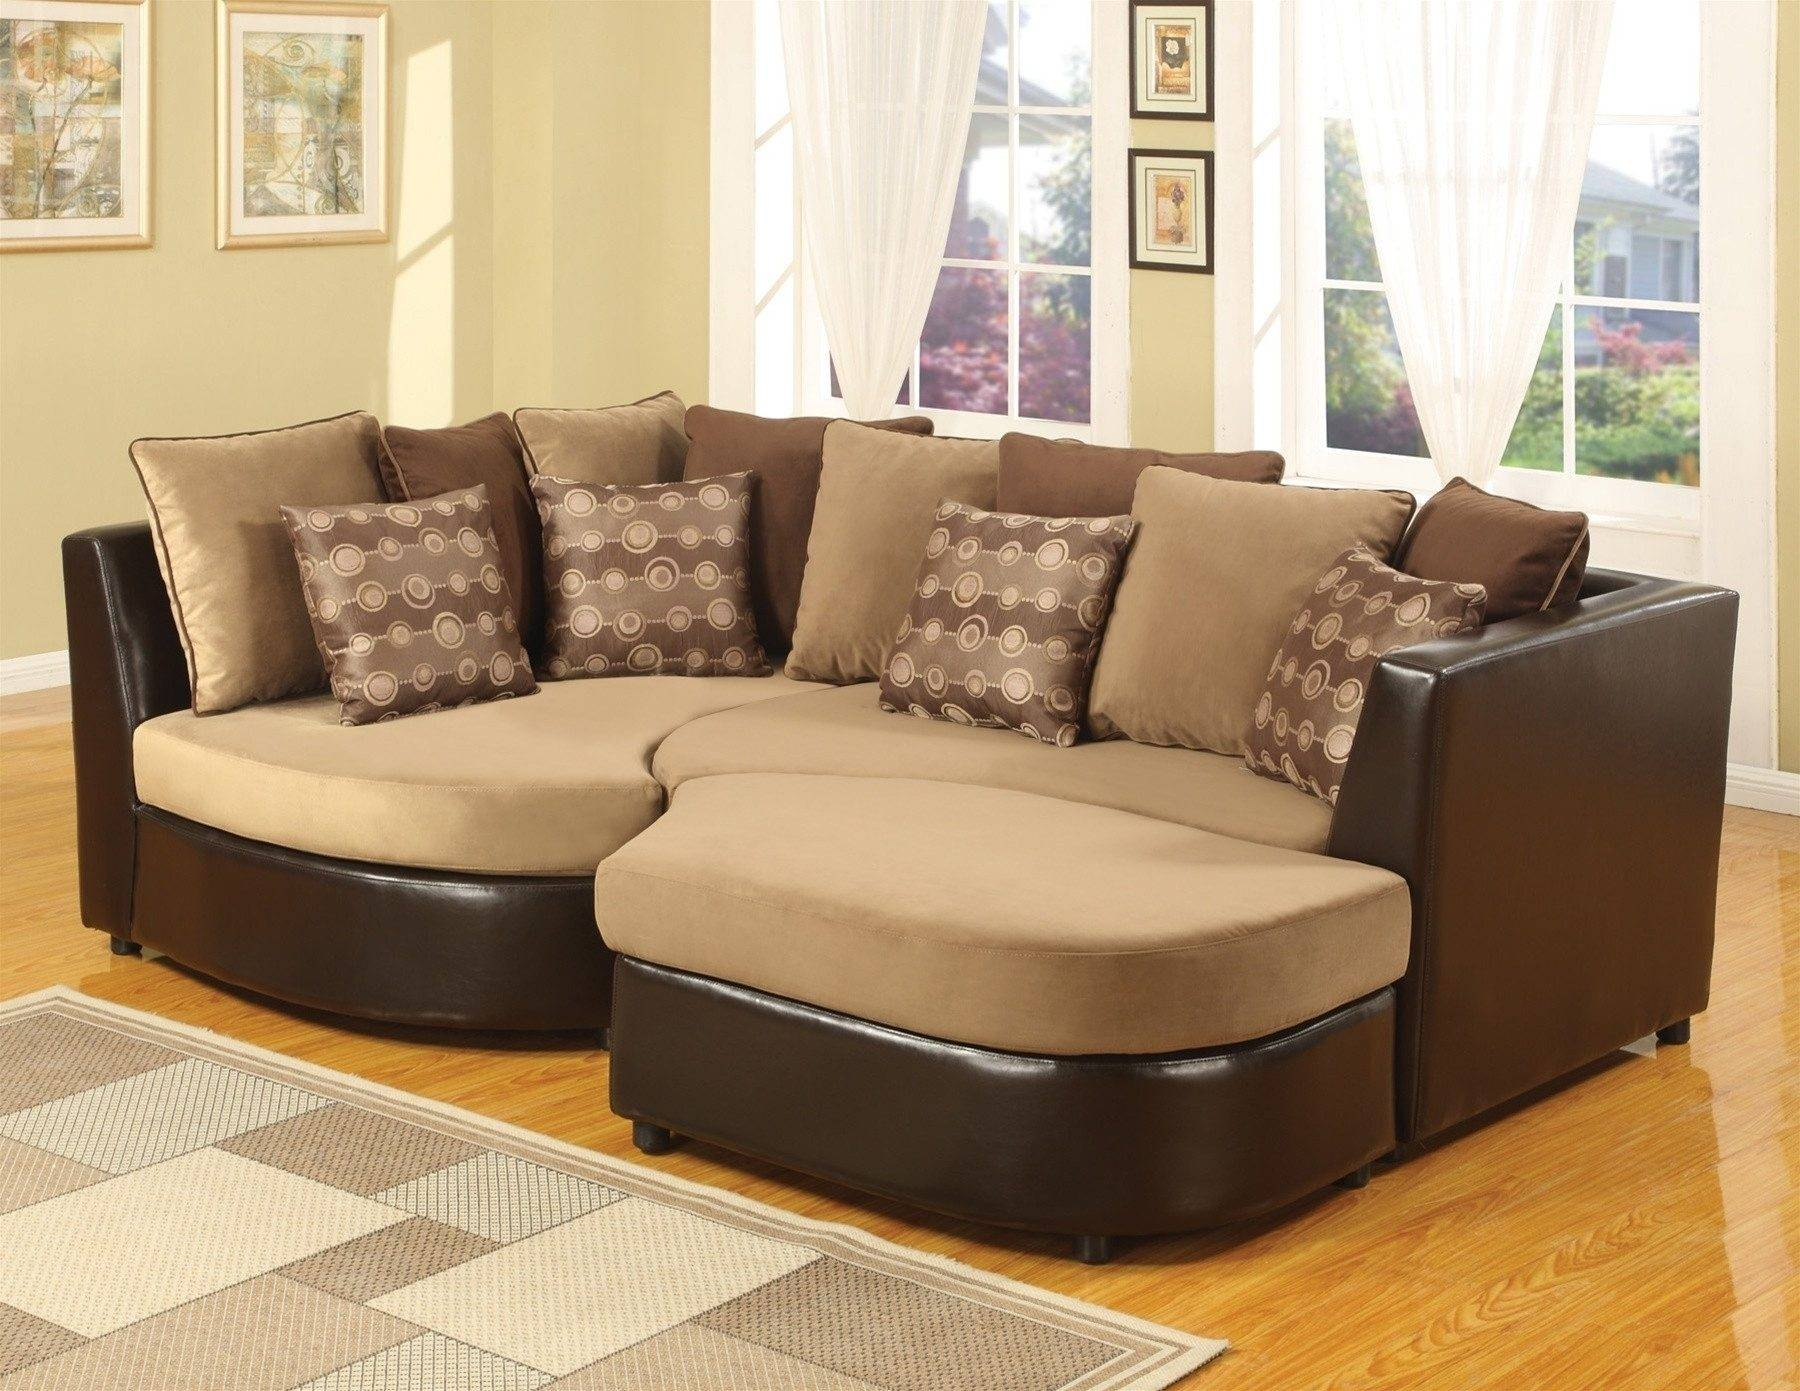 Sofas Center : Sectional Pit Sofa Unusual Images Inspirations with regard to Pit Sofas (Image 27 of 30)